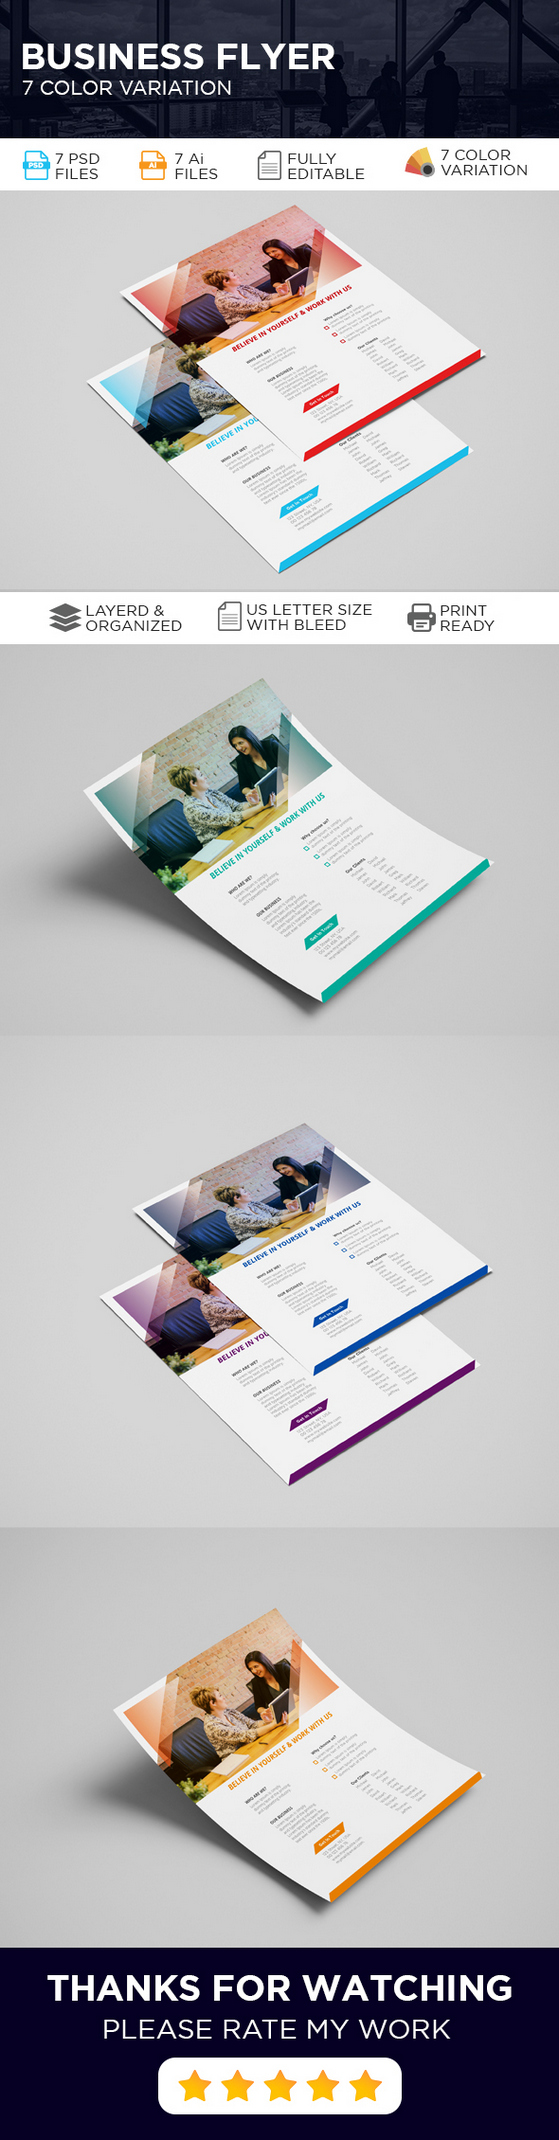 Free Company Profile Flyer Template InDesign Preview image